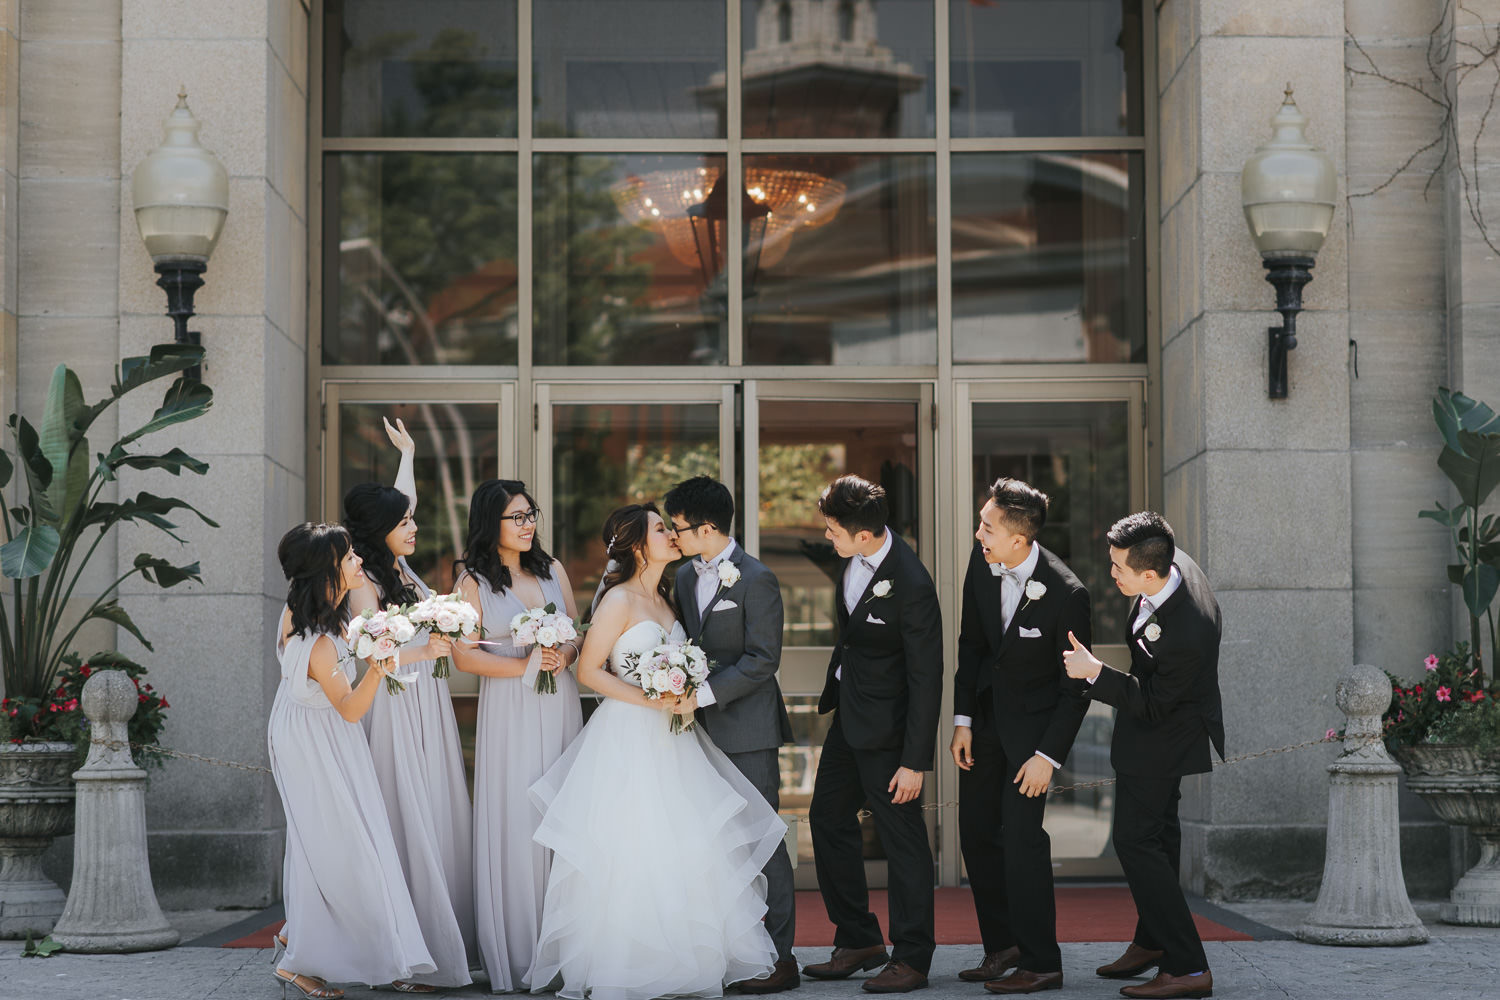 Liberty Grand wedding party photo